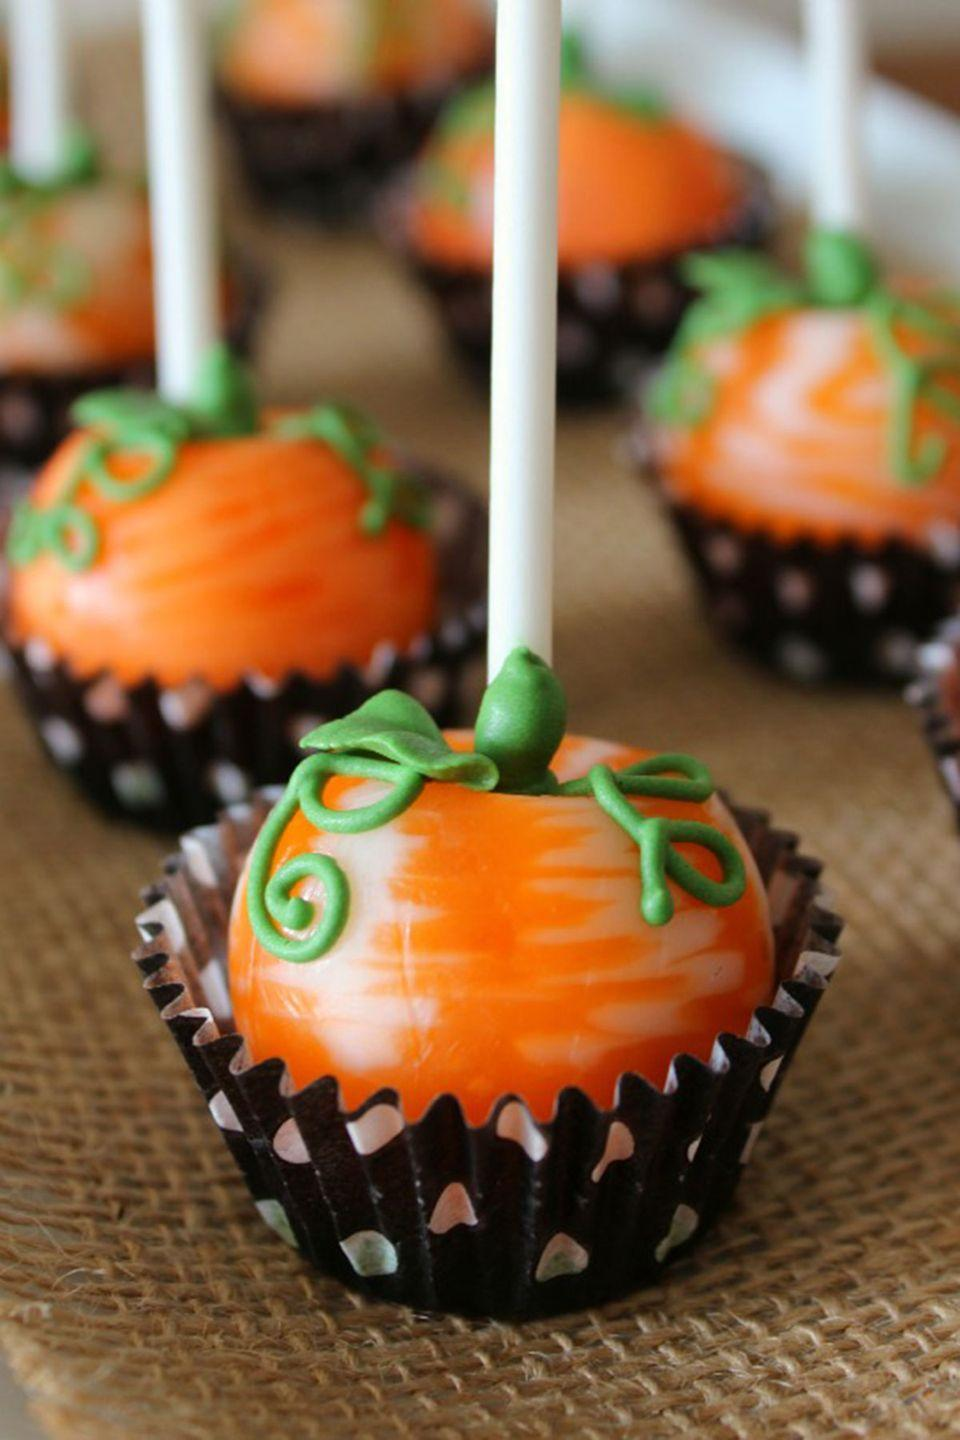 """<p>These pretty pumpkin pops will have you looking like a pro, but they're so easy to make.</p><p><strong>Get the recipe at <a href=""""http://www.sweetsugarbelle.com/2012/09/pumpkin-pops/"""" rel=""""nofollow noopener"""" target=""""_blank"""" data-ylk=""""slk:Sweet Sugarbelle"""" class=""""link rapid-noclick-resp"""">Sweet Sugarbelle</a>. </strong> </p>"""